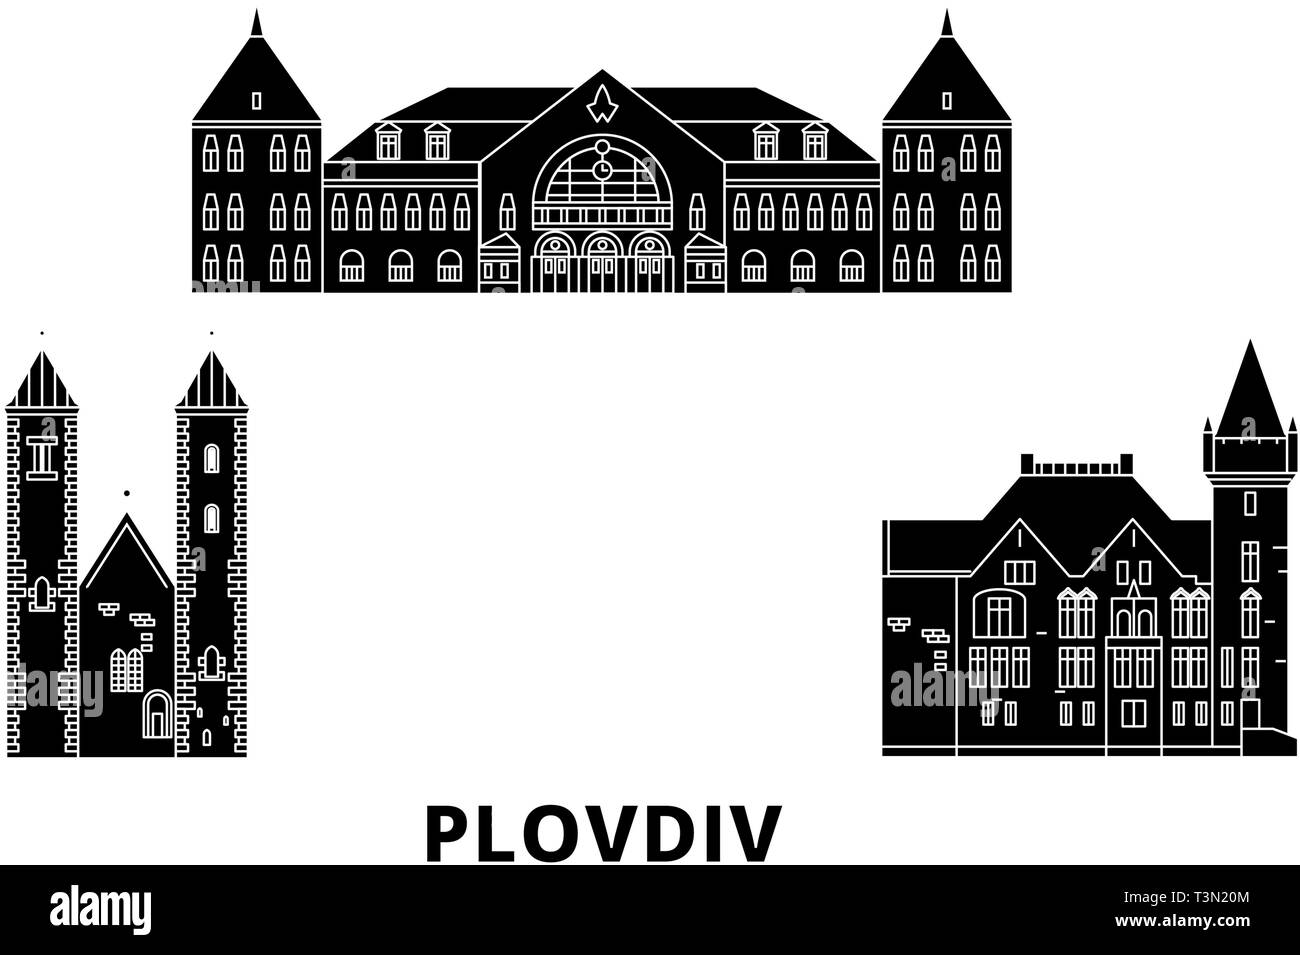 Bulgaria, Plovdiv flat travel skyline set. Bulgaria, Plovdiv black city vector illustration, symbol, travel sights, landmarks. - Stock Vector